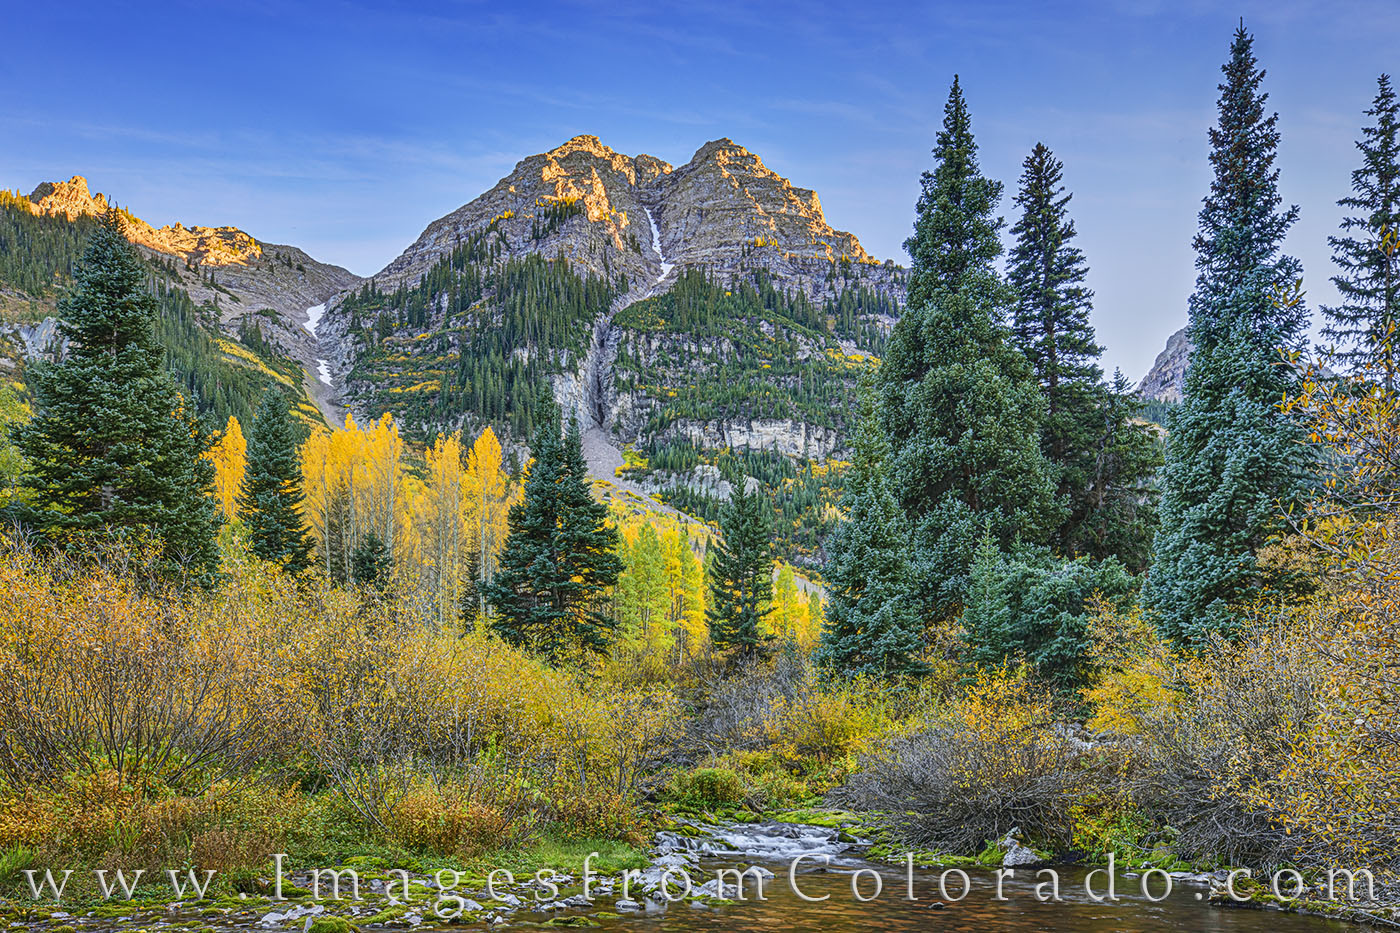 Golden Aspen shine in the last light of an Autumn evening along West Maroon Creek in the Maroon Bells Wilderness Area.